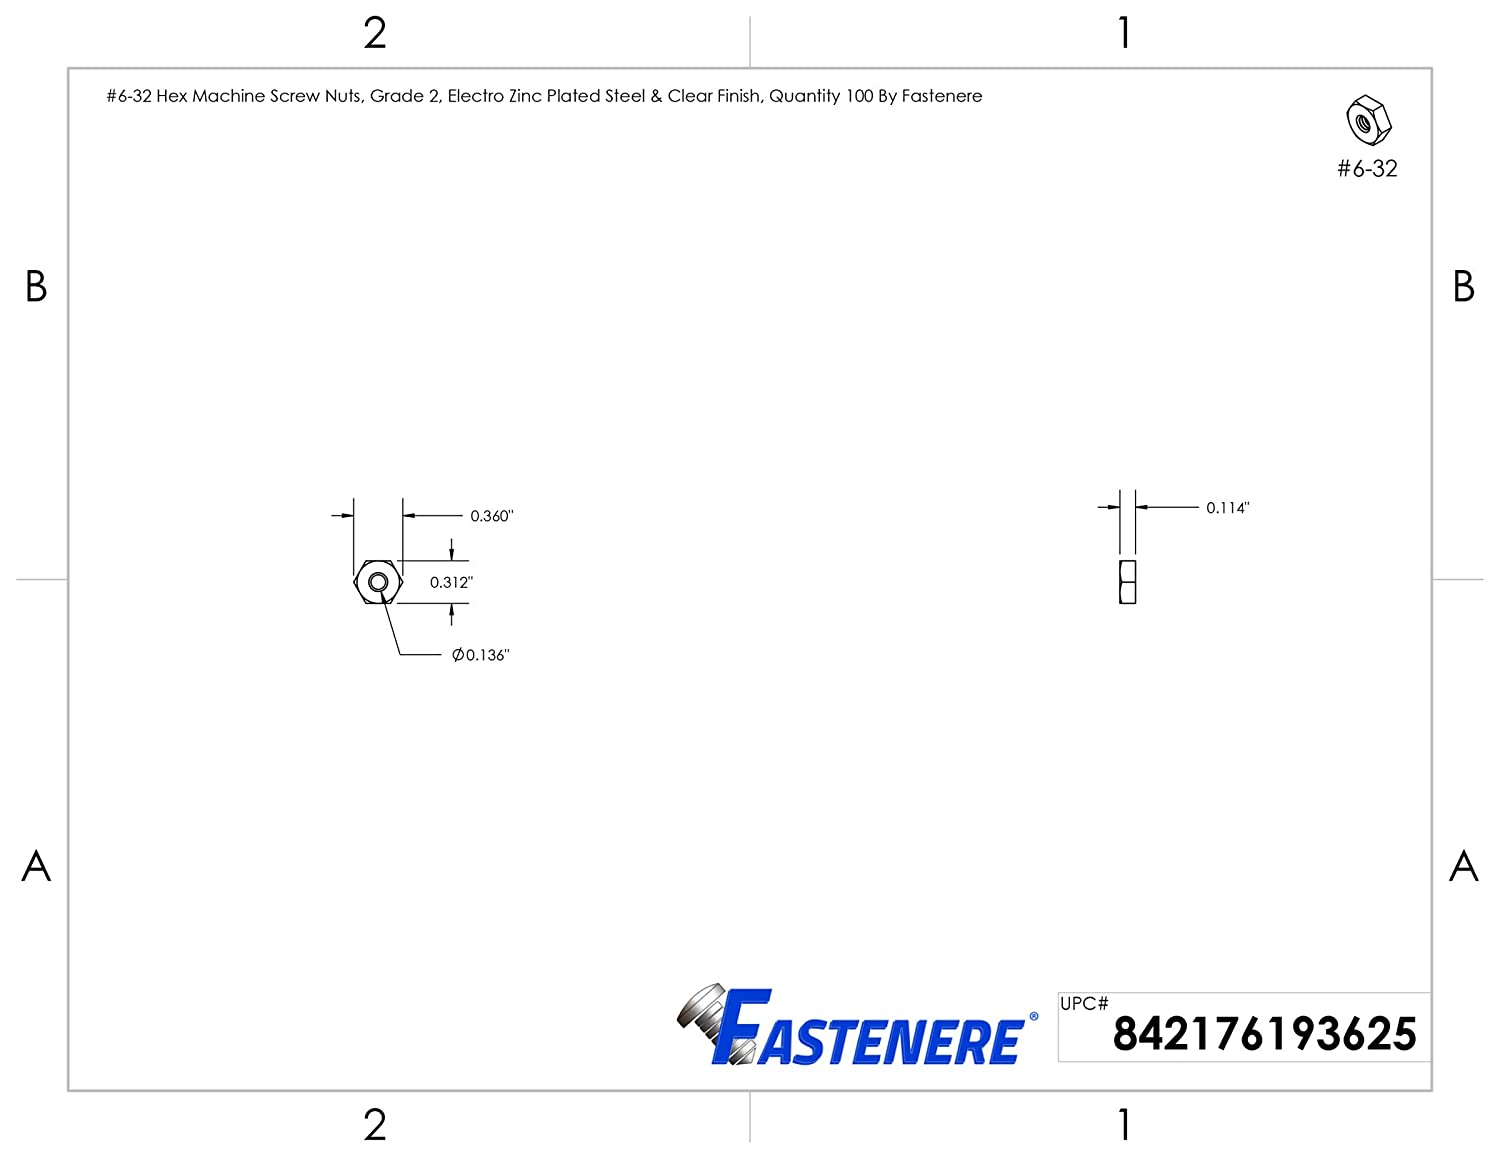 #6-32 Hex Machine Screw Nuts Quantity 100 by Fastenere Electro Zinc Plated Steel /& Clear Finish Grade 2